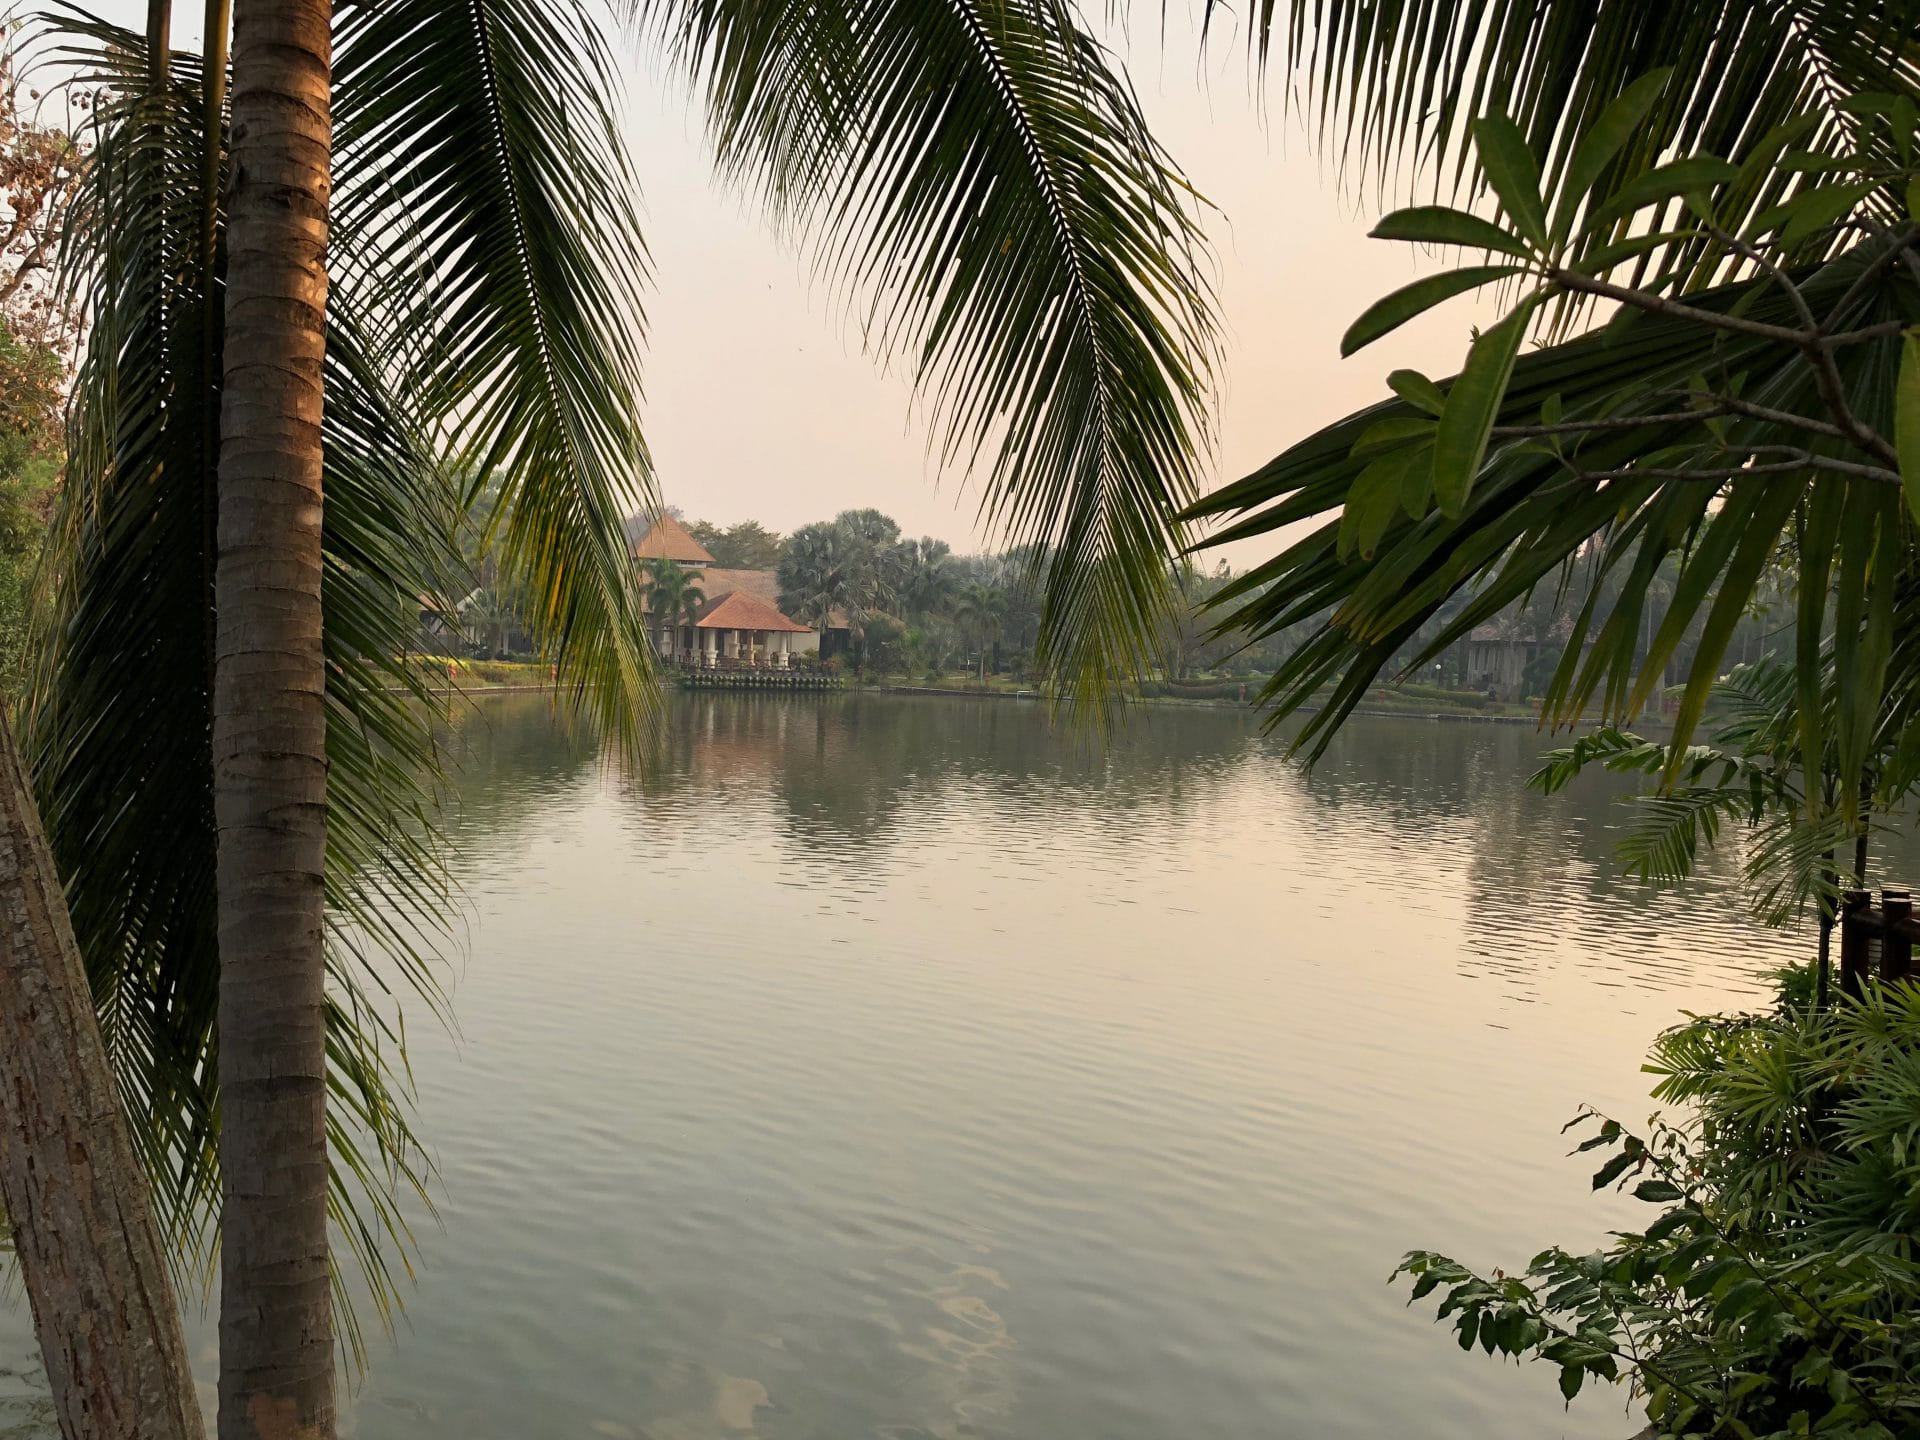 Thailand and Myanmar Missions (Day 1)